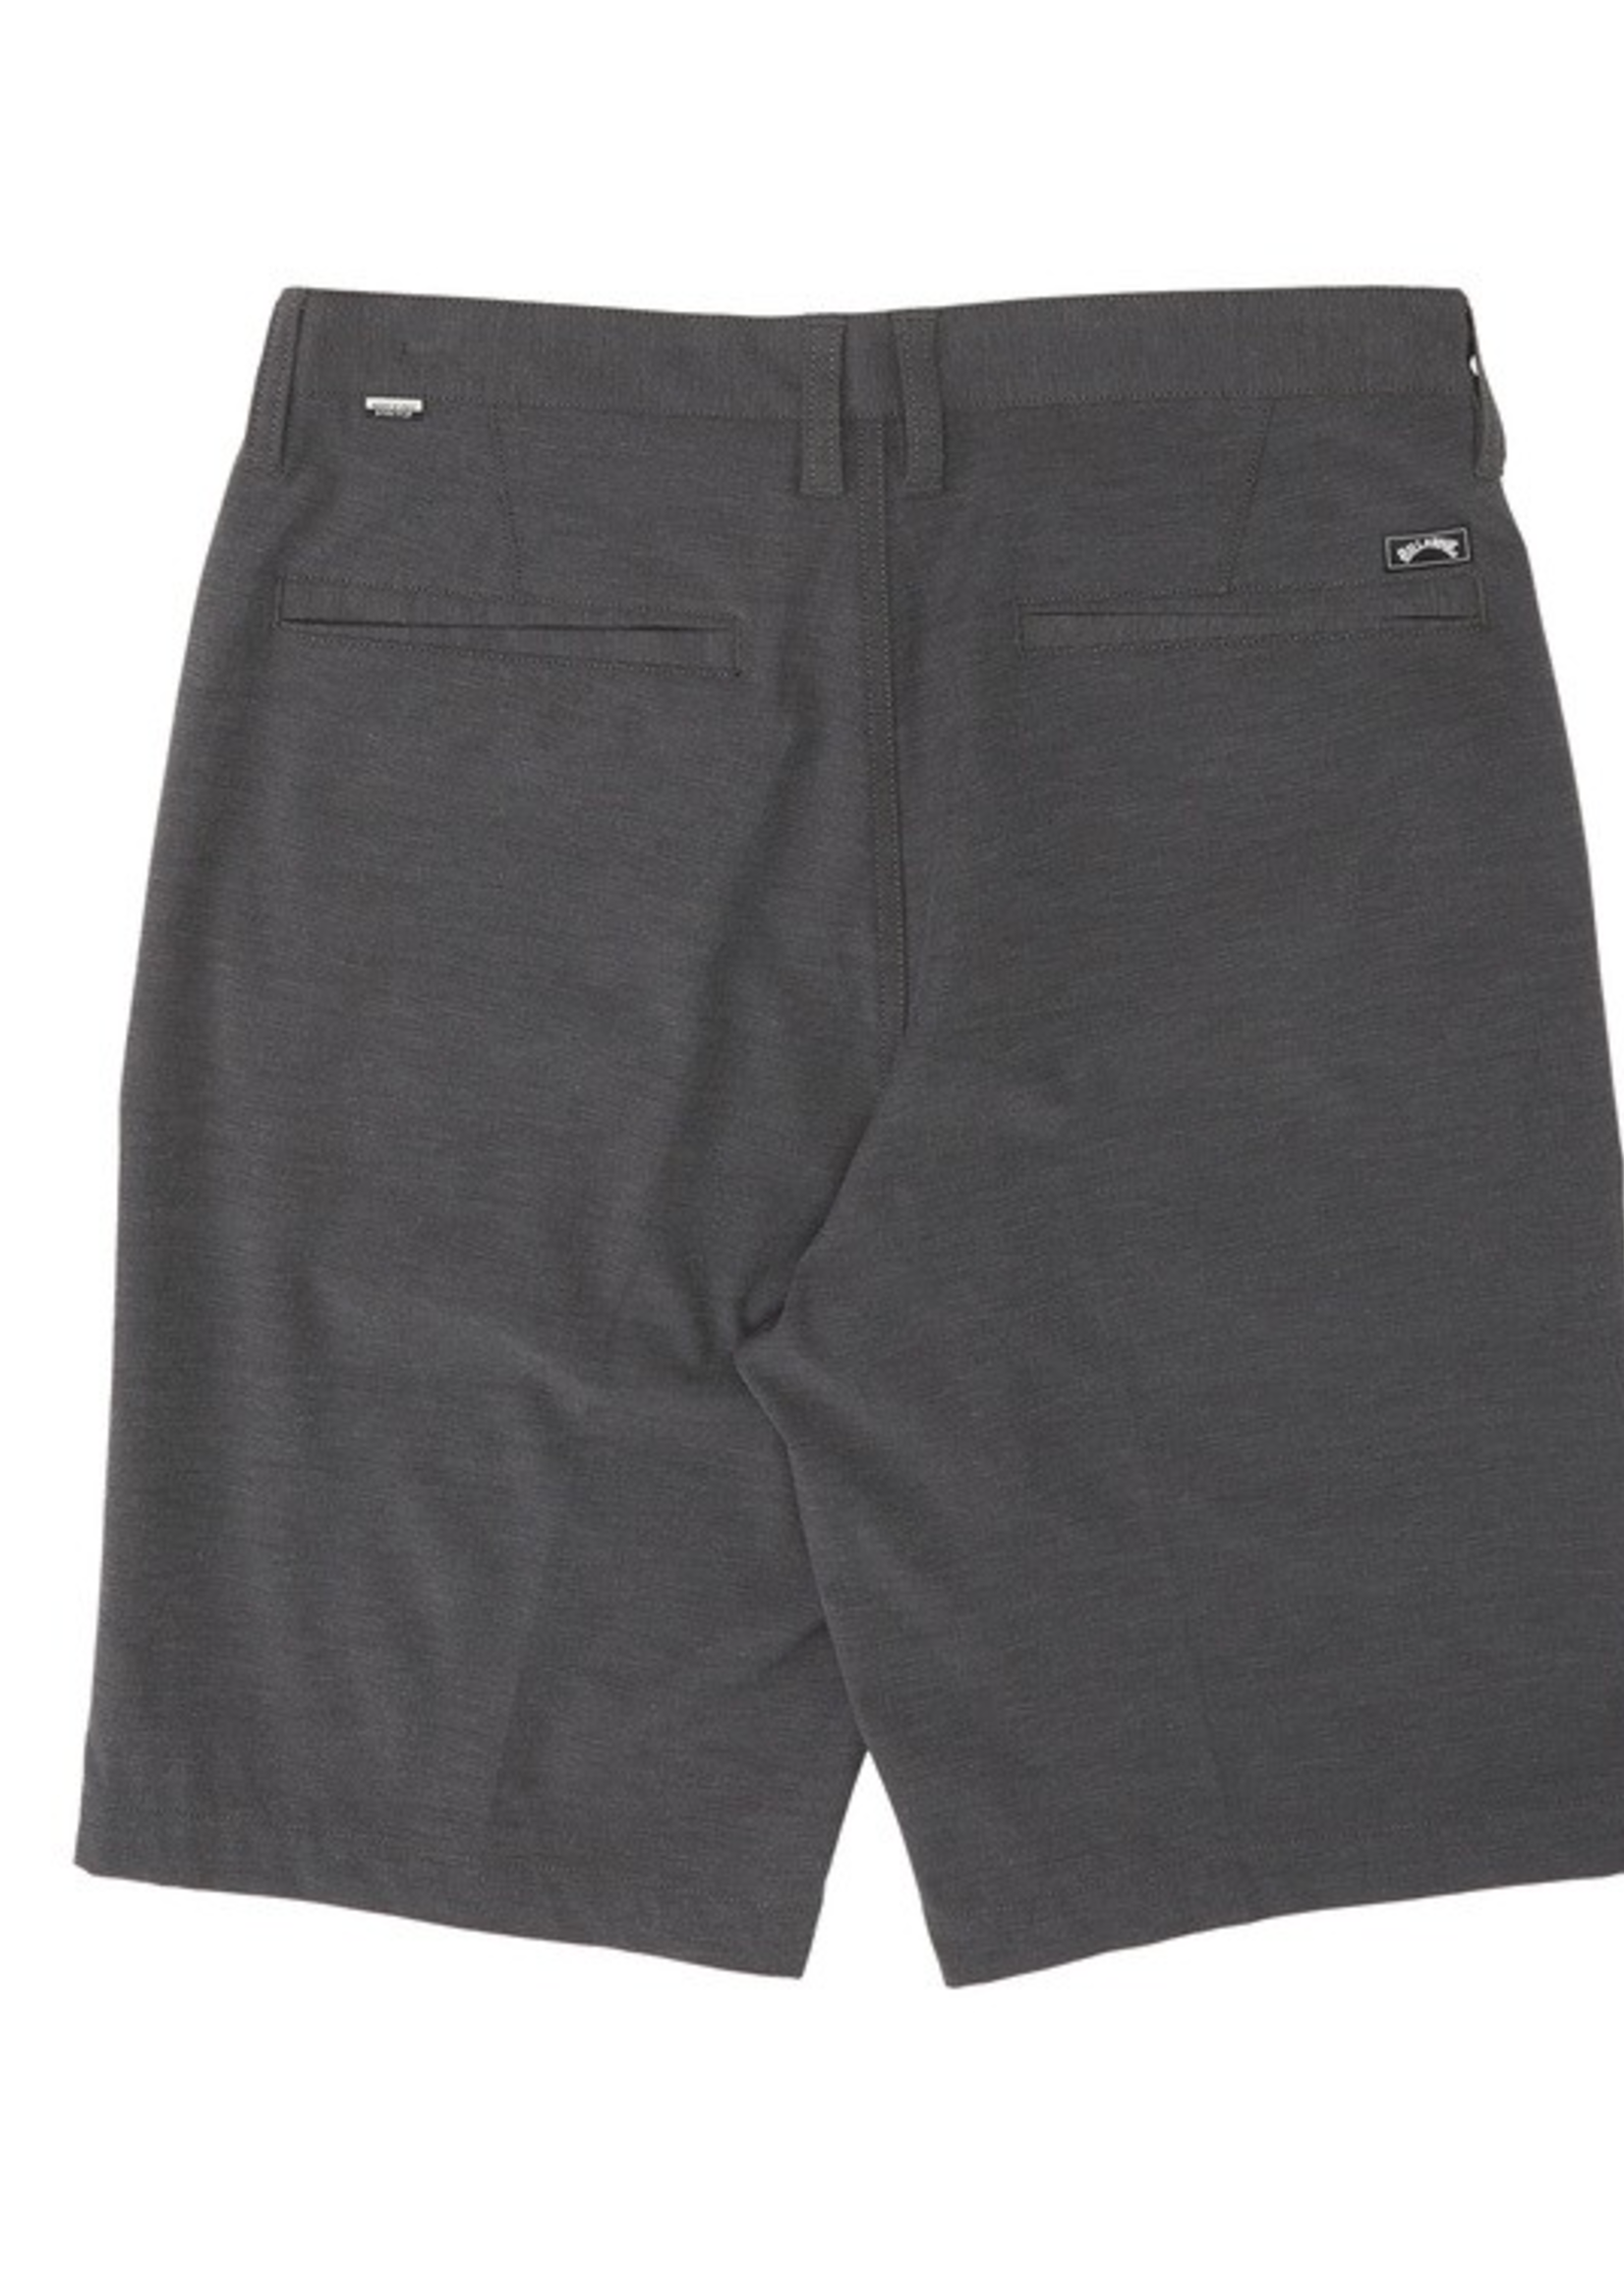 Billabong Crossfire Short - Grey